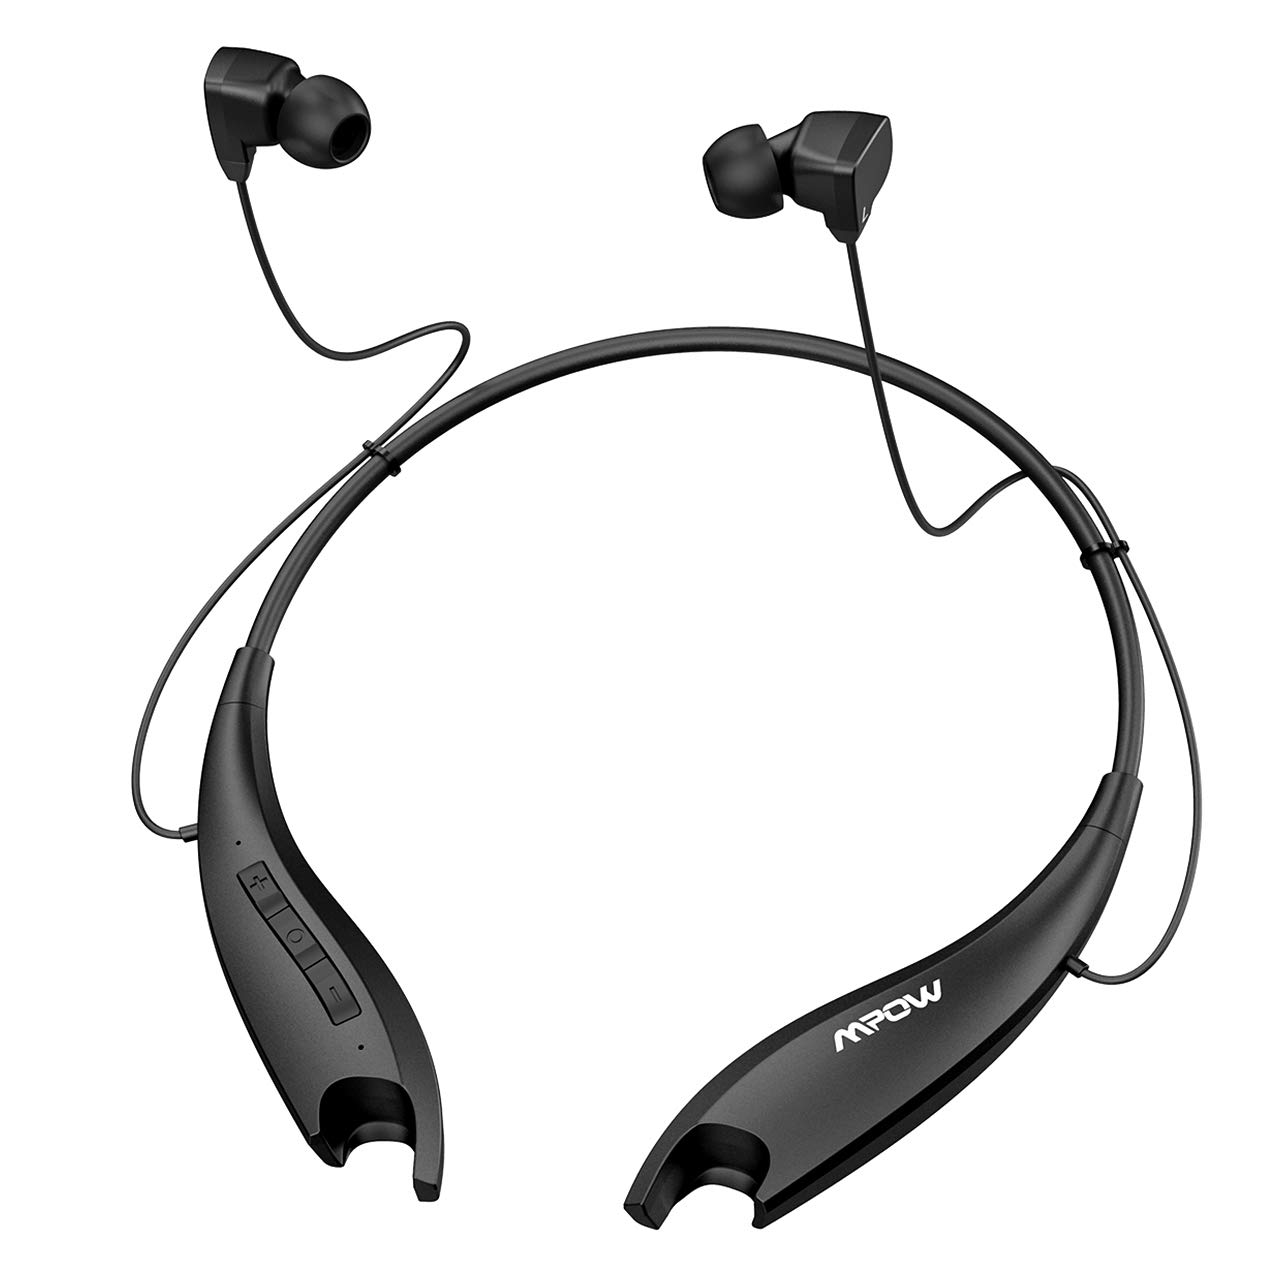 Mpow Jaws Gen5 Bluetooth Headphones V5.0 Wireless Neckband Headphones W/ 18H Playtime, Magnetic Earbuds W/Call Vibrate & CVC 6.0 Noise Cancelling Mic, Wireless Neckband Headsets,Black